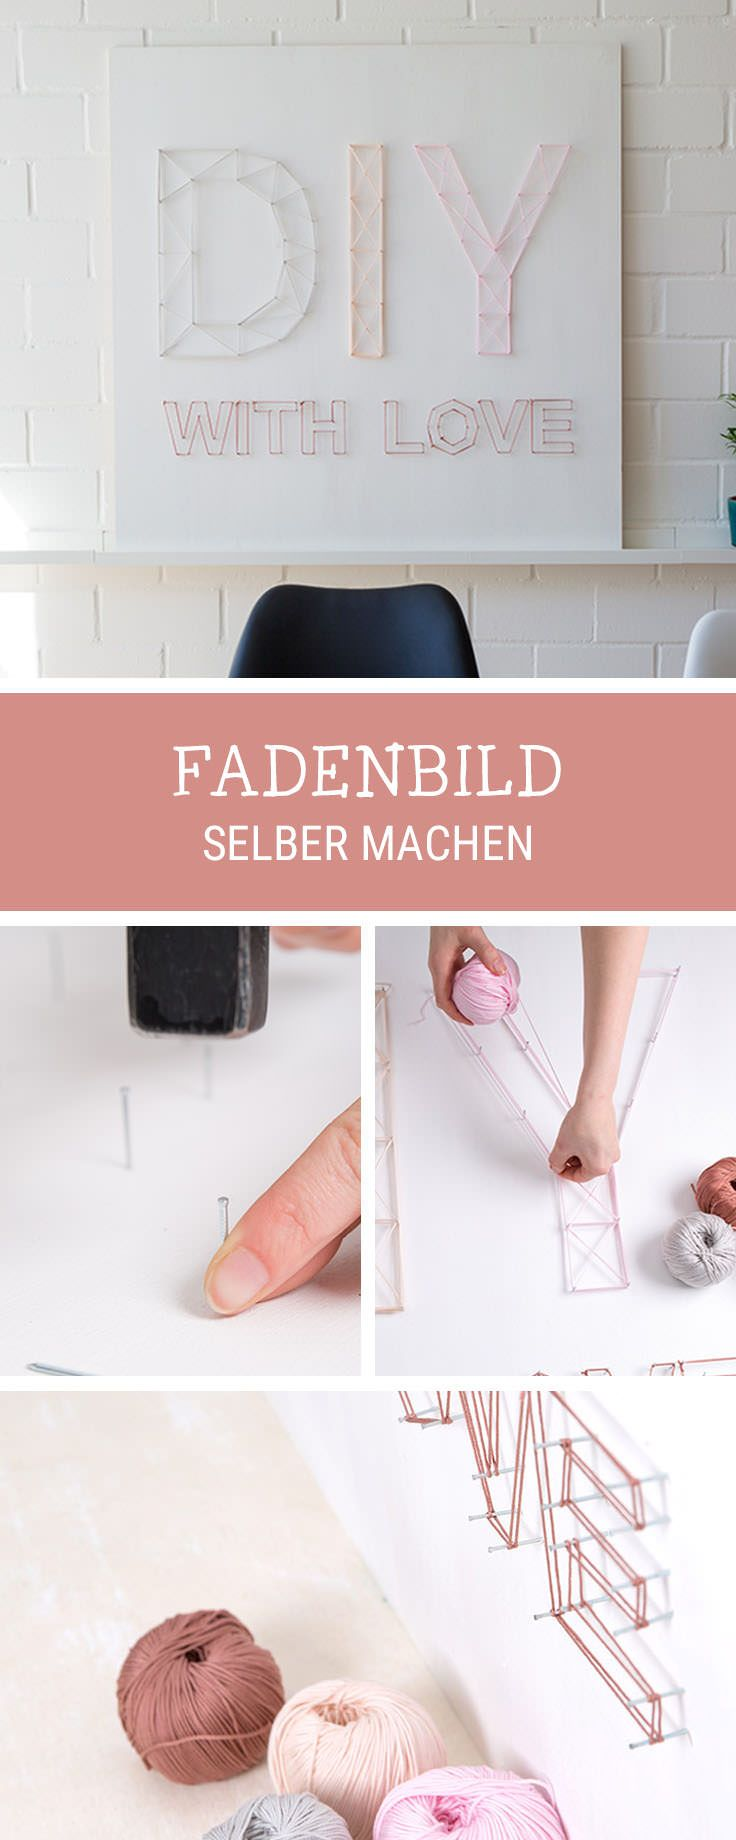 DIY-Anleitung für Zuhause, angesagtes Fadenbild selbermachen, einfaches DIY / easy diy tutorial for wall decor made of yarn, crafting with yarn via DaWanda.com